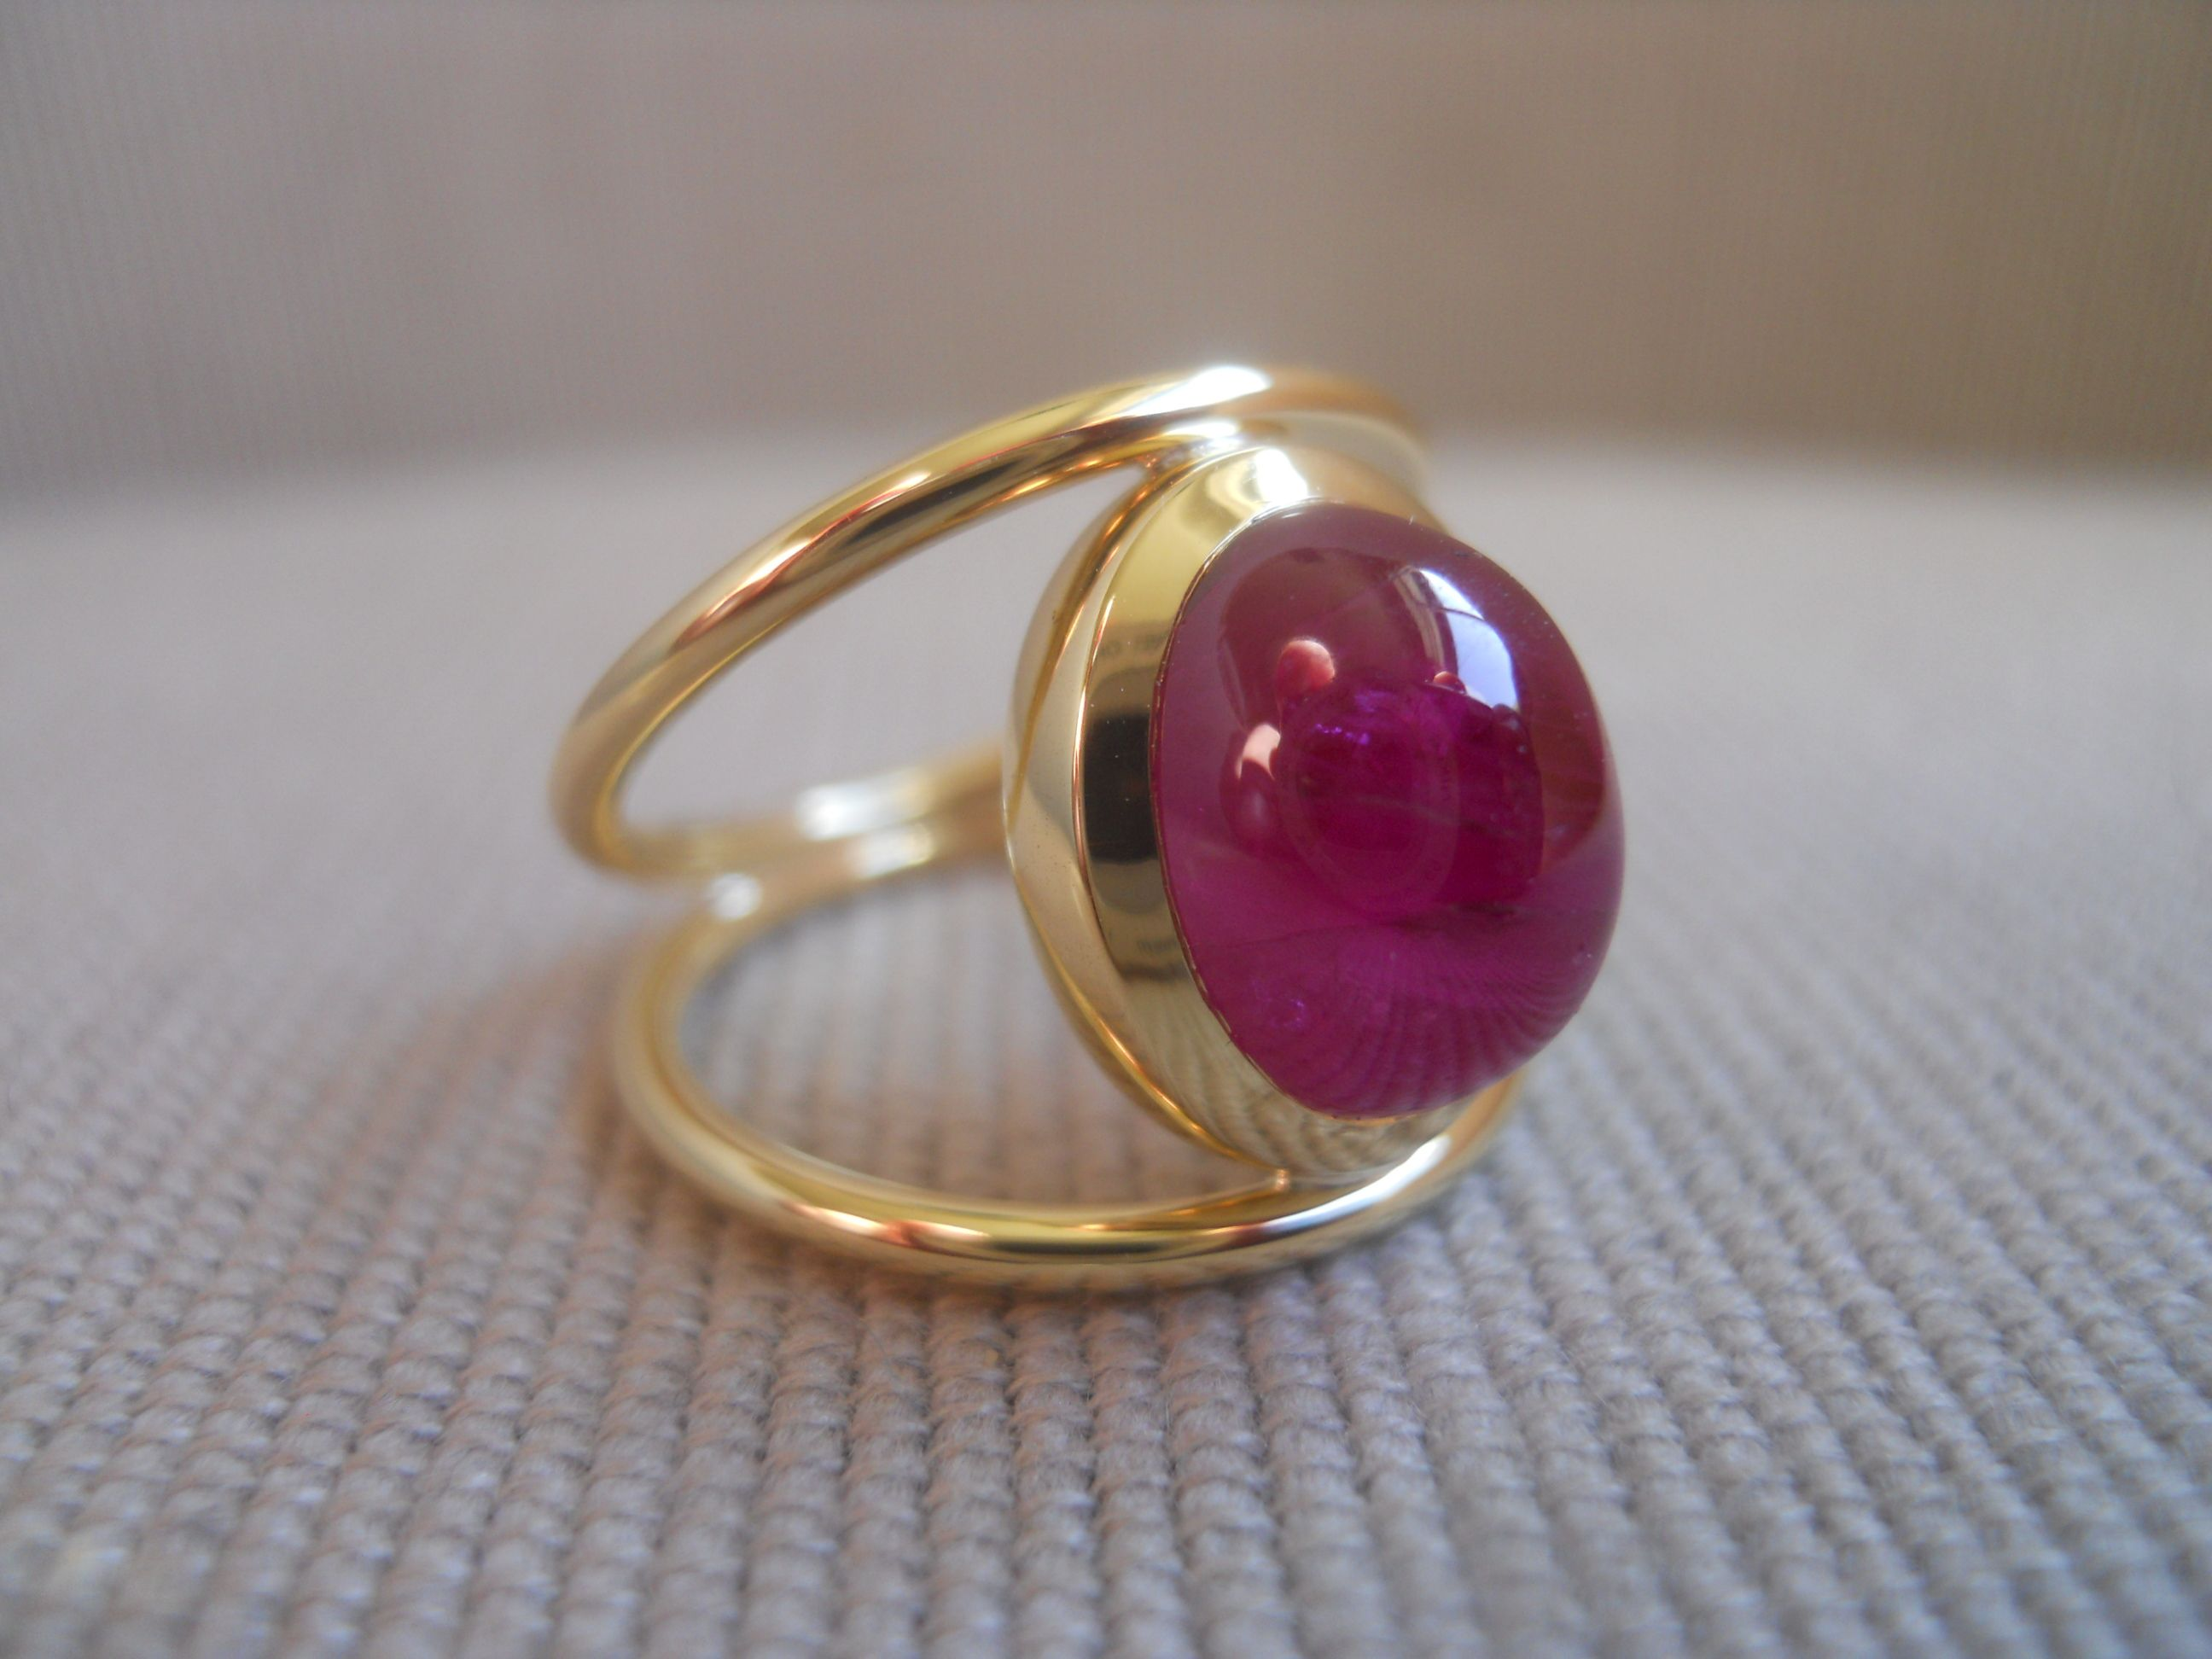 """Red chevalier"" ring. Ruby cabochon 5.51cts on 18k yellow gold."